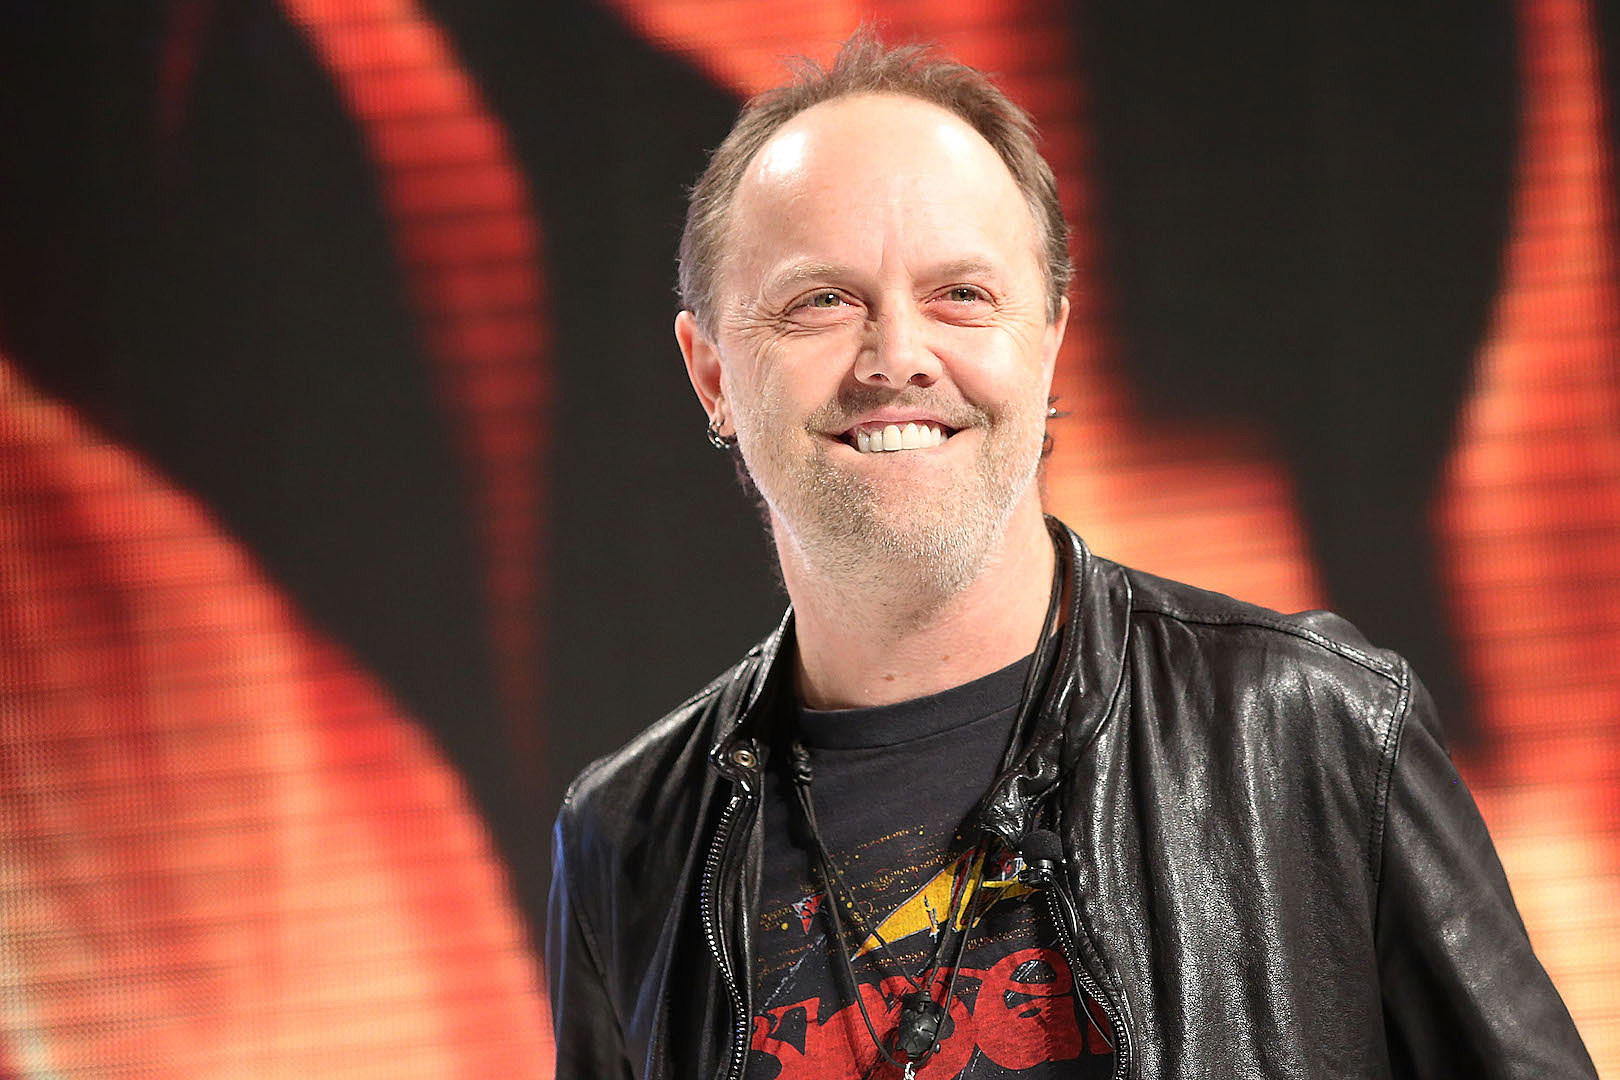 Metallica's Lars Ulrich Hints at a Second Covers Album